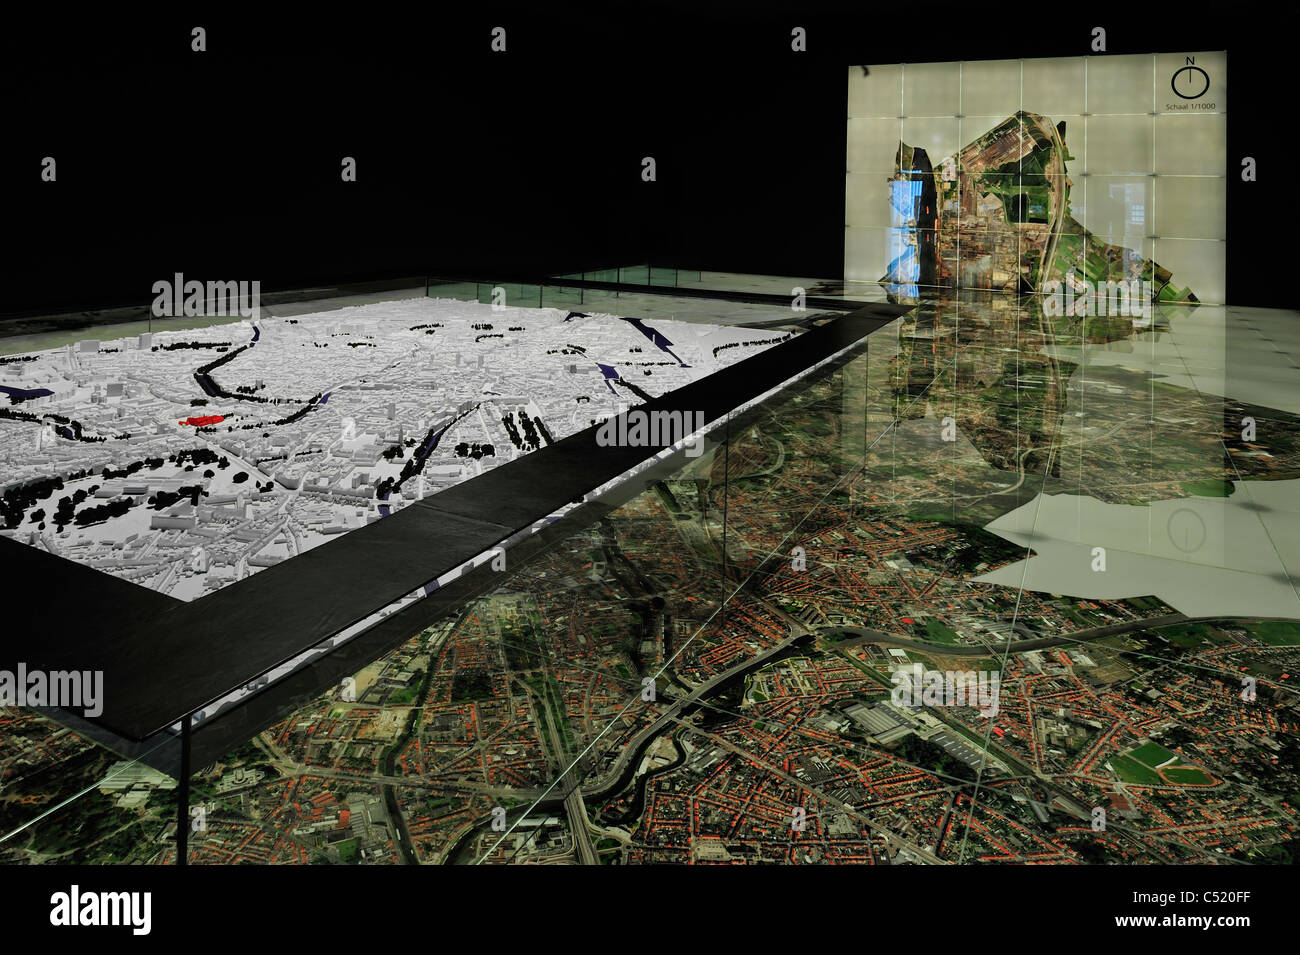 Scale-model and aerial photo of the town Ghent at STAM, the Ghent city museum, Belgium - Stock Image